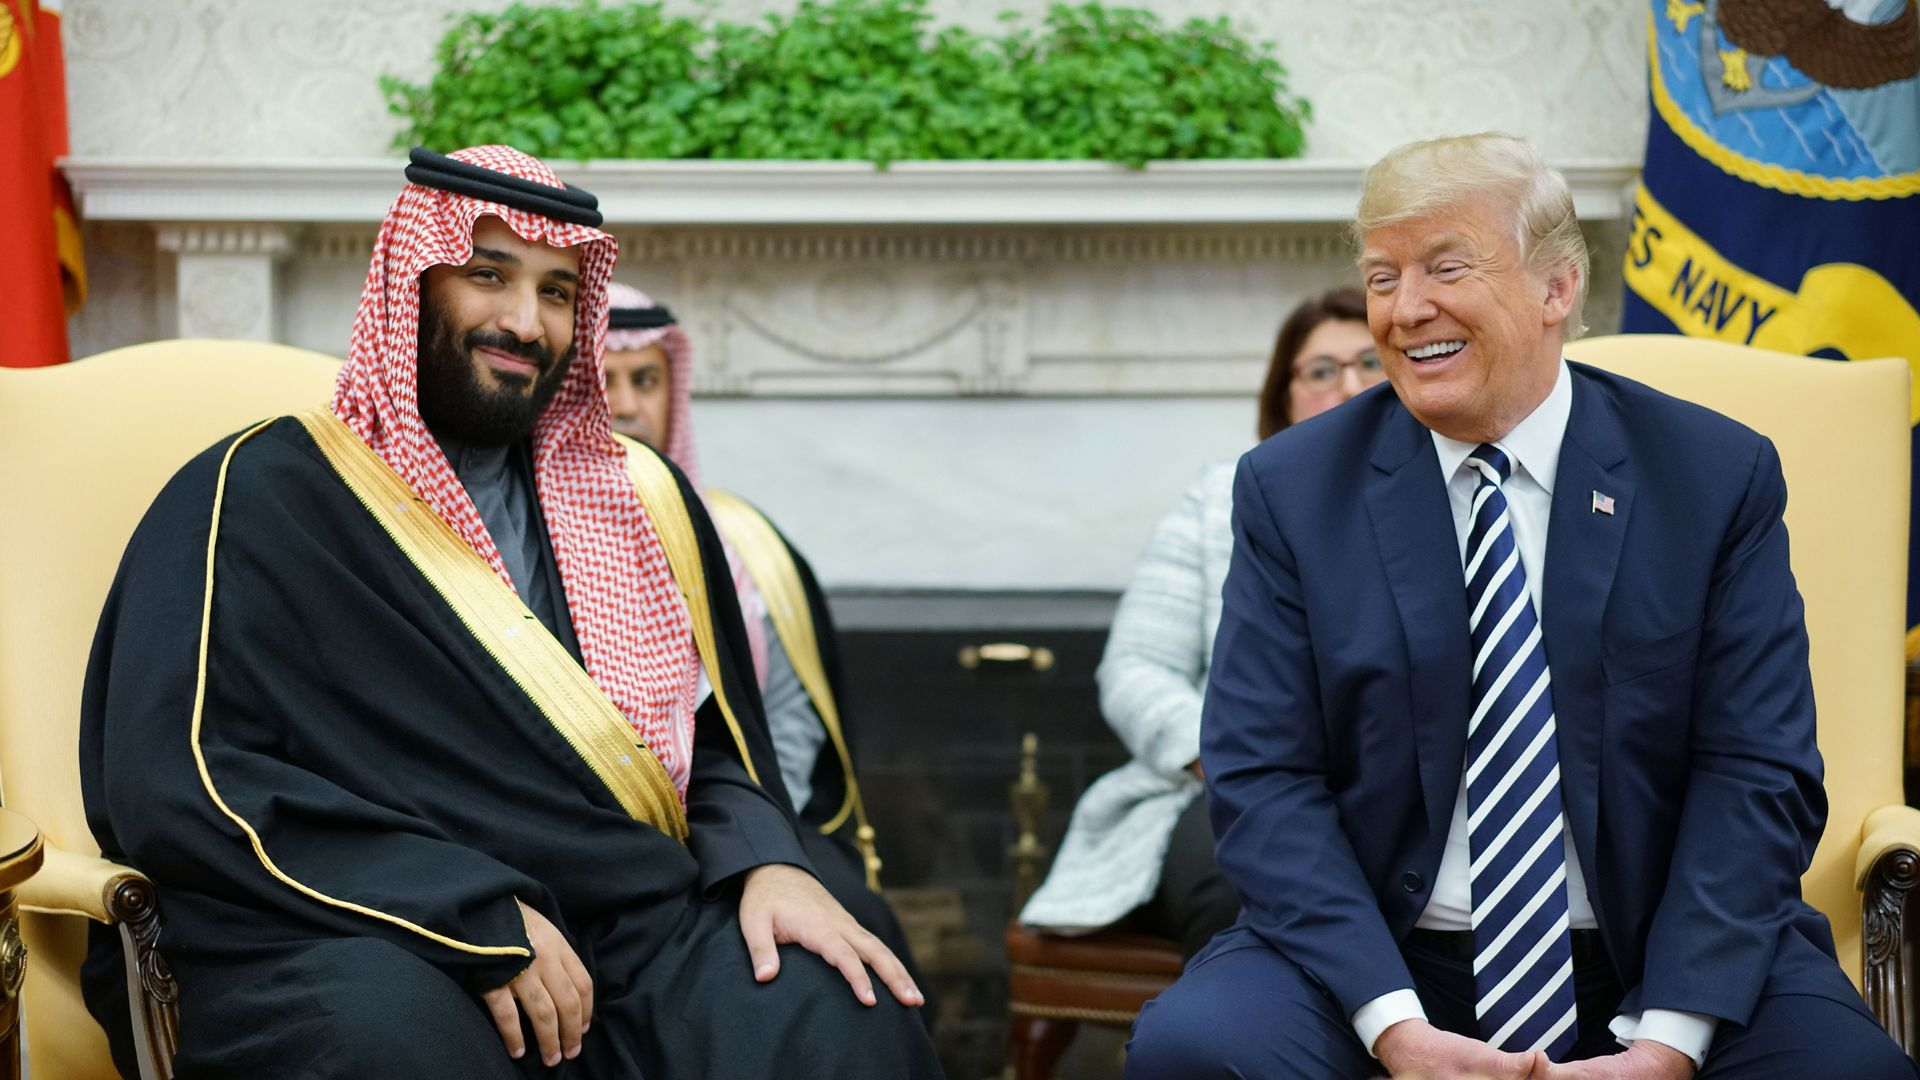 President Trump and Saudi Crown Prince Mohammed bin Salman seated in the Oval Office